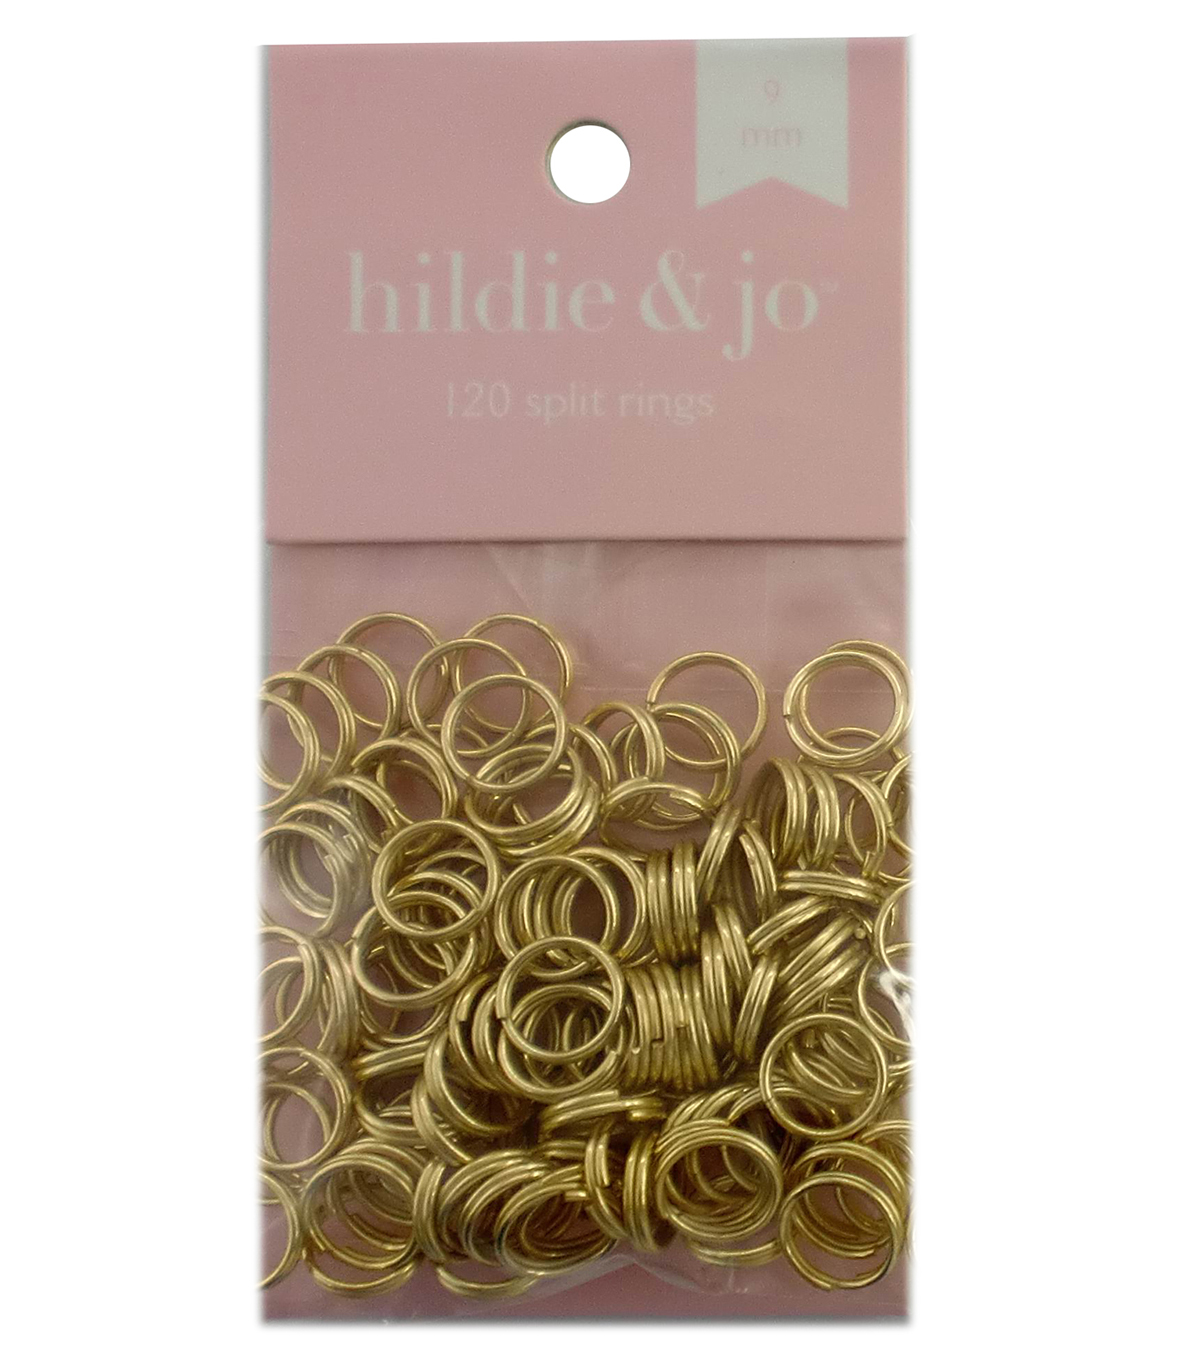 hildie & jo™ 120 Pack 9mm Split Rings-Gold